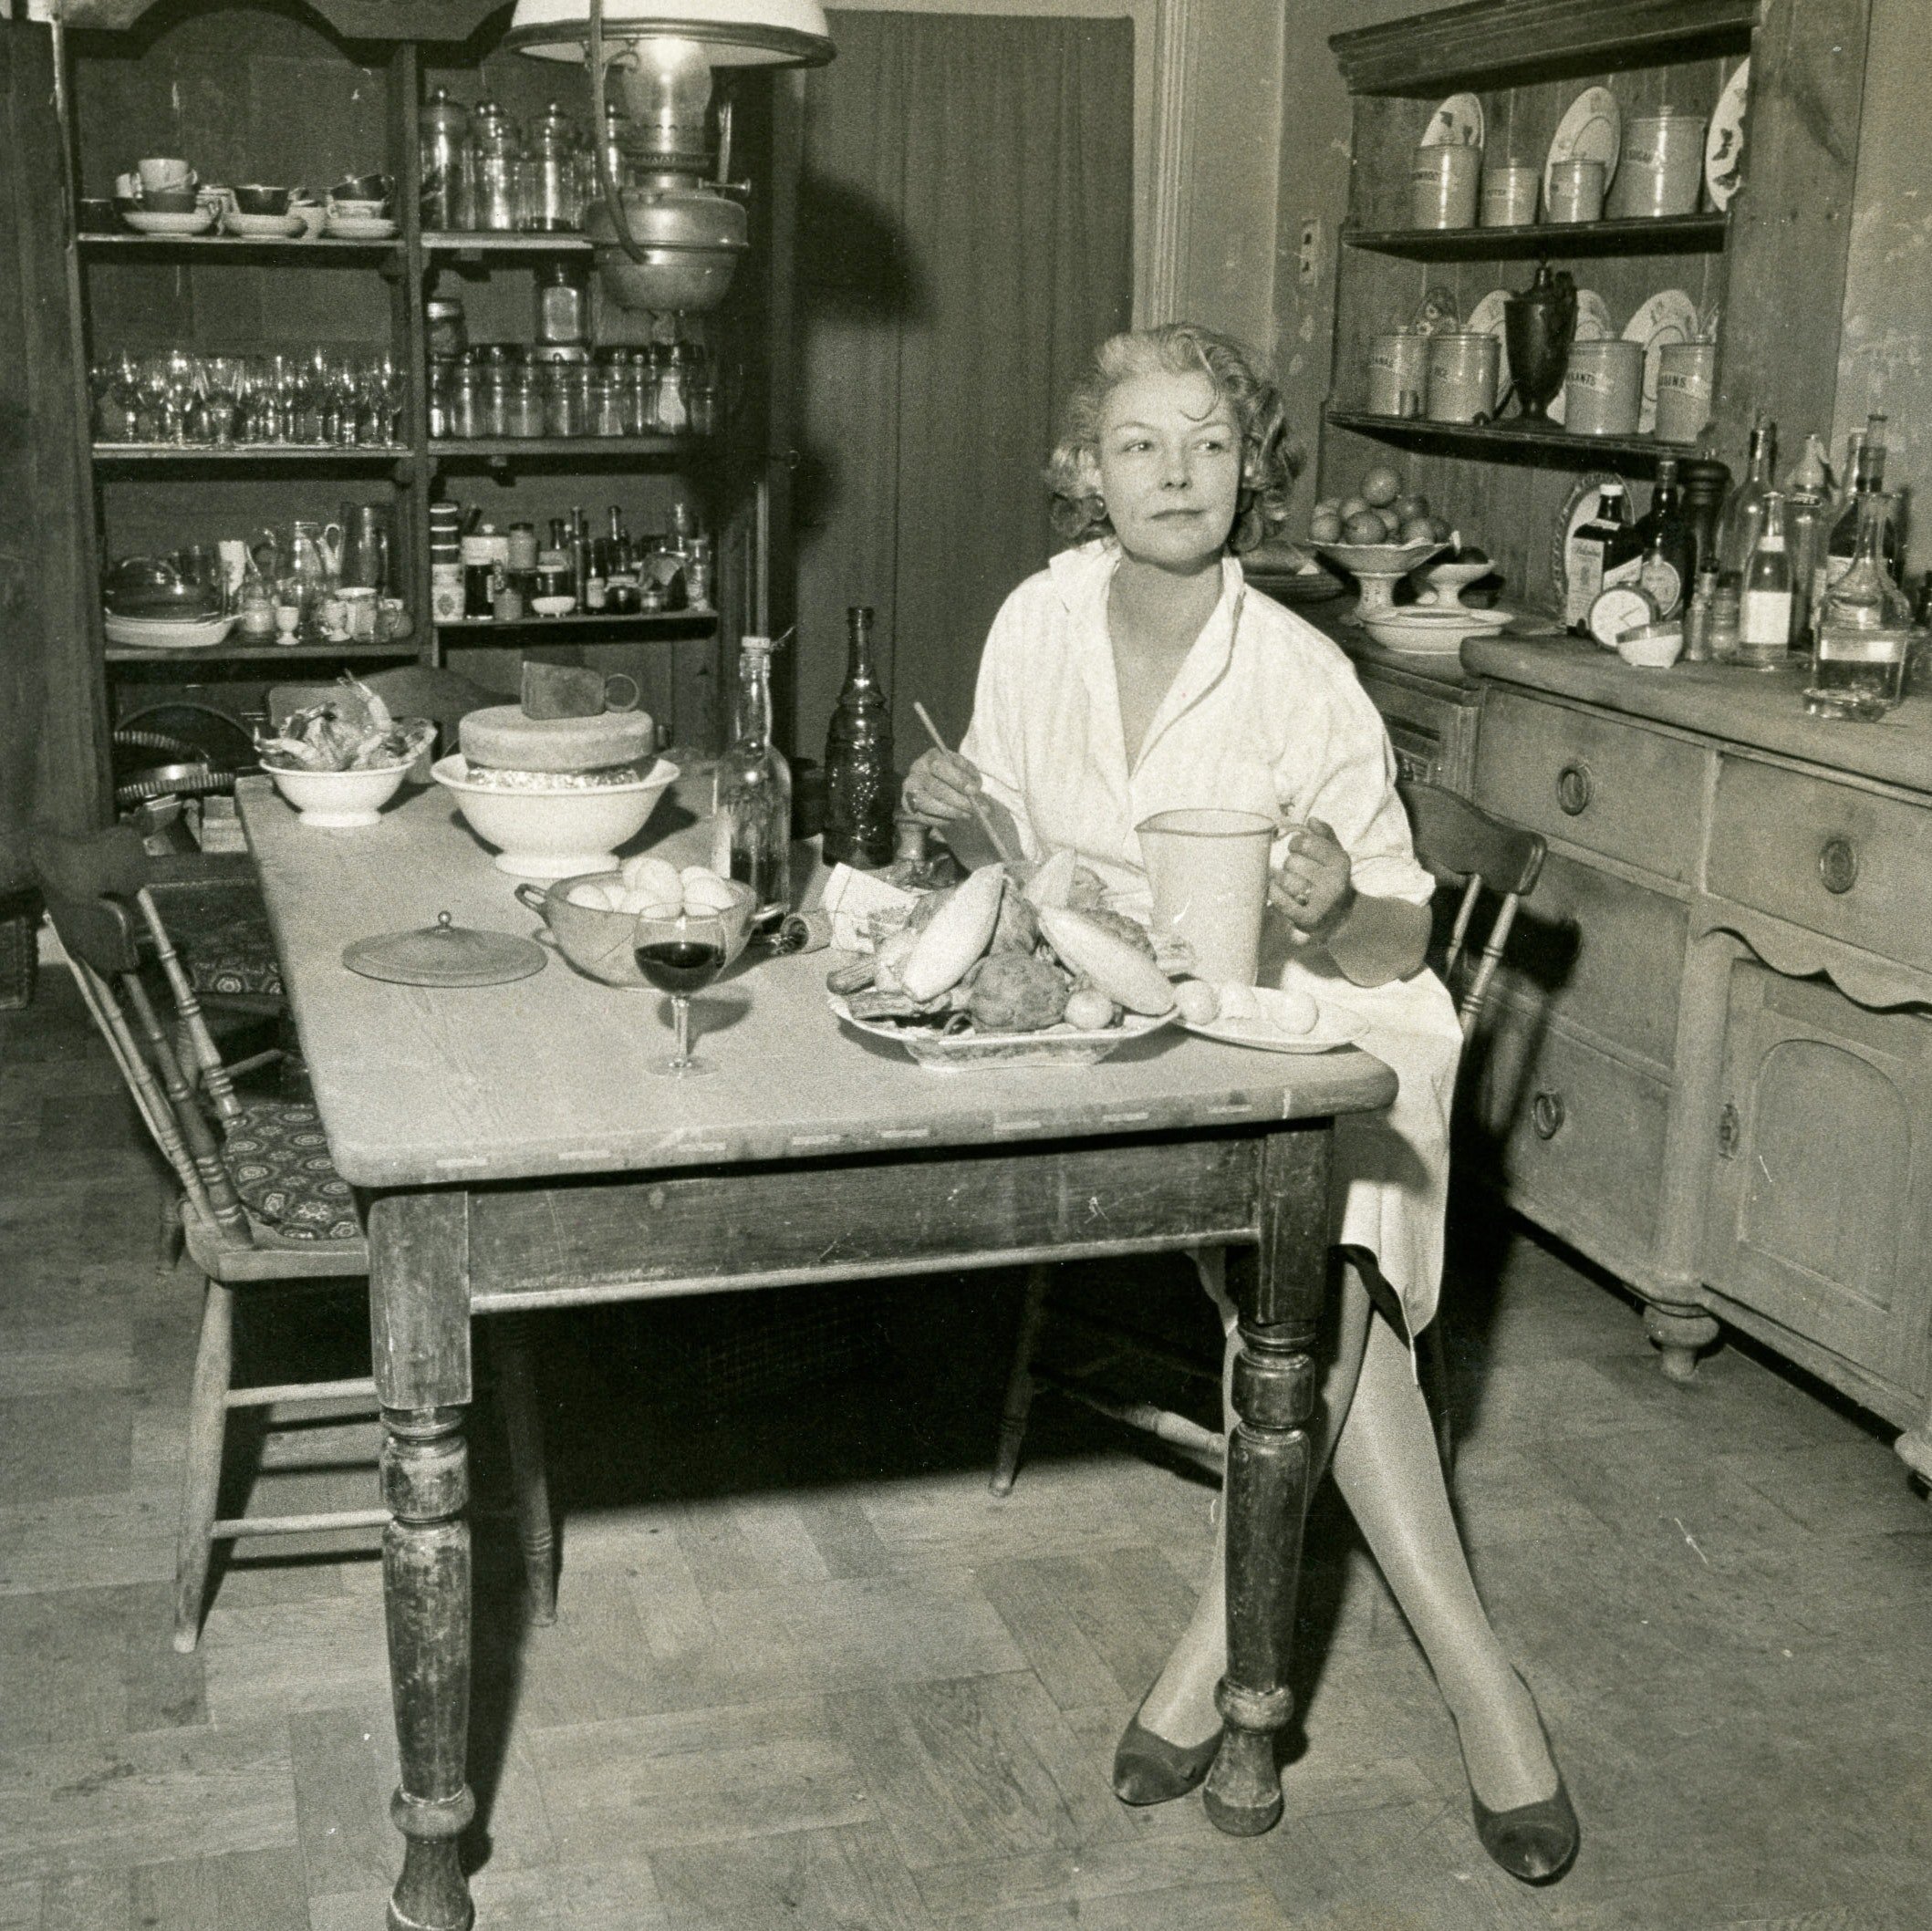 Elizabeth David sitting at the table in her kitchen